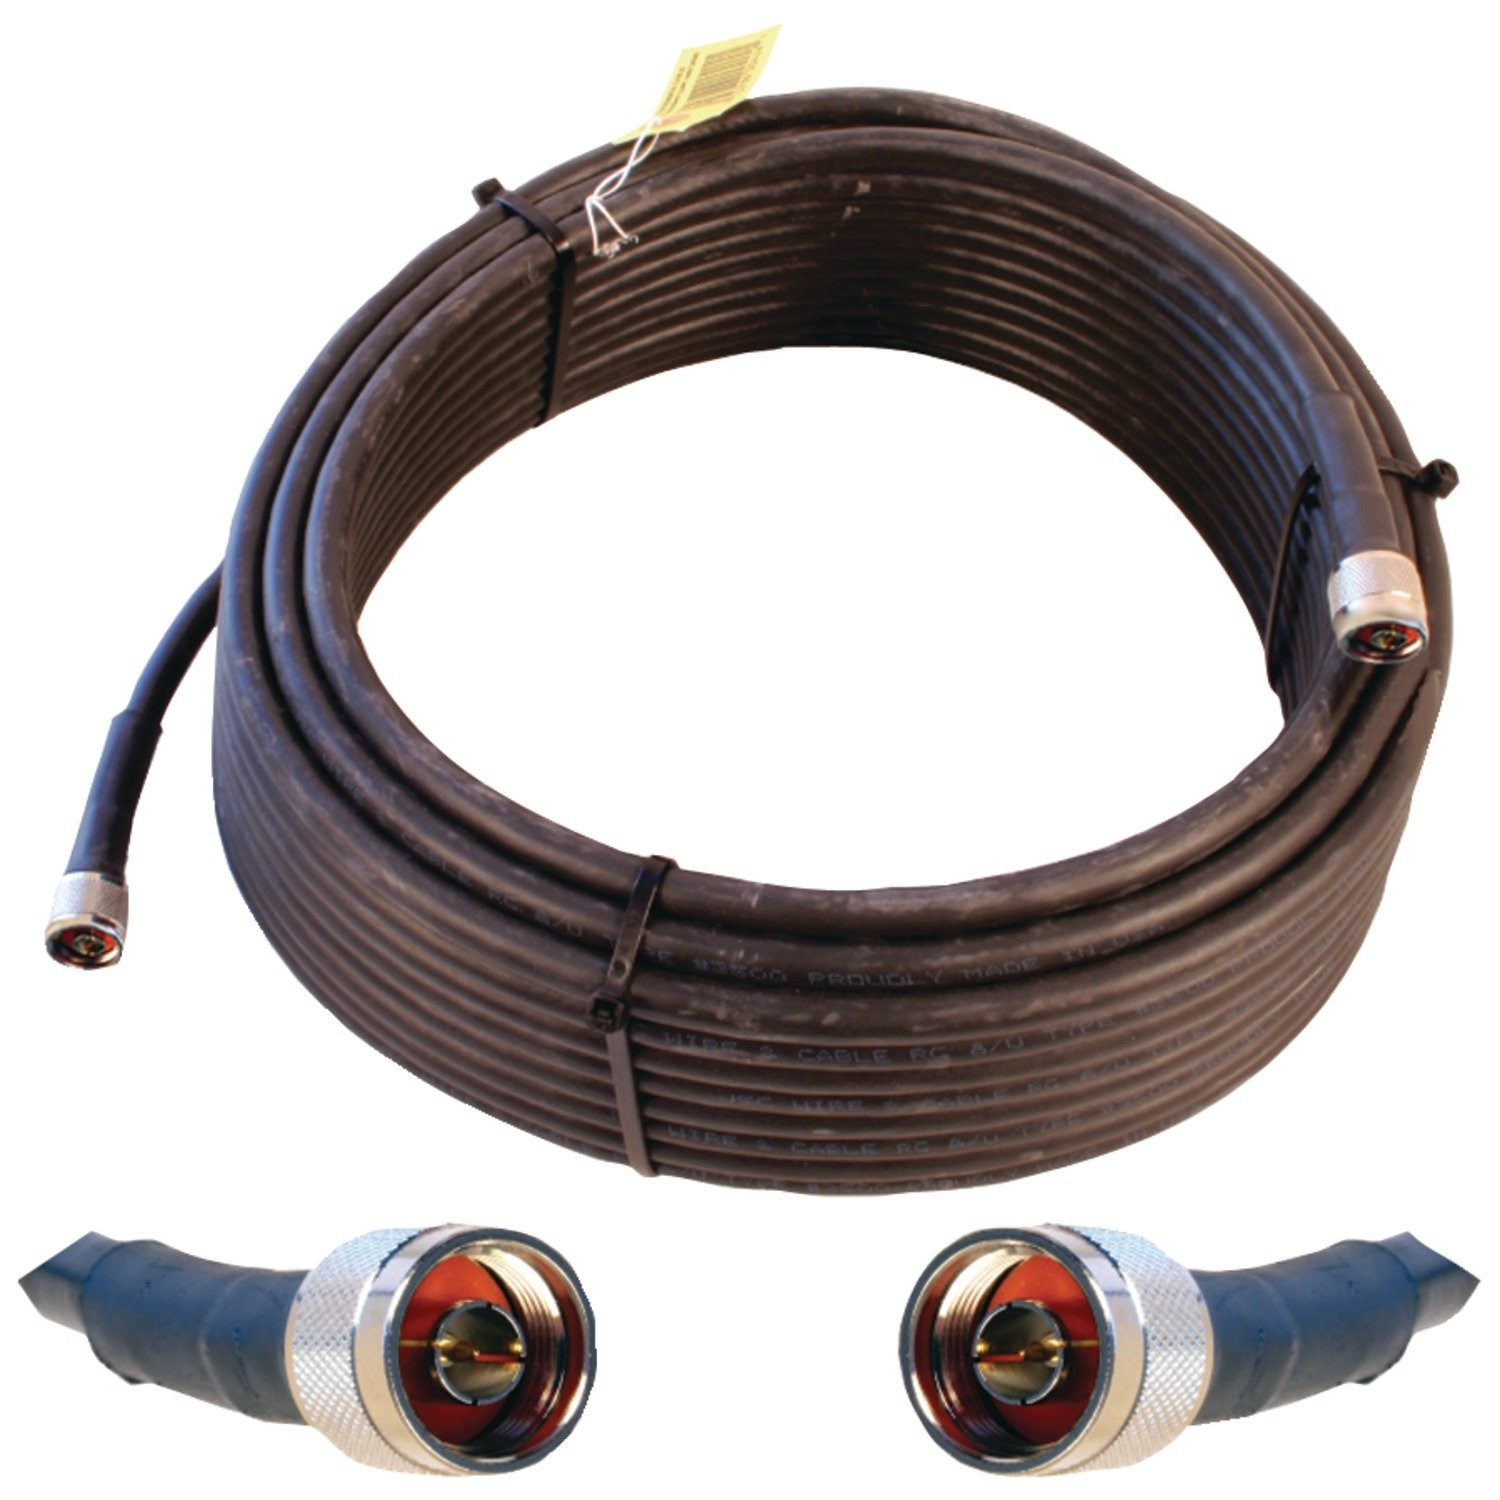 Wilson WILSON-400 Ultra Low Loss Coax Cable N-Male To N-Male 75ft Black Cable 952375